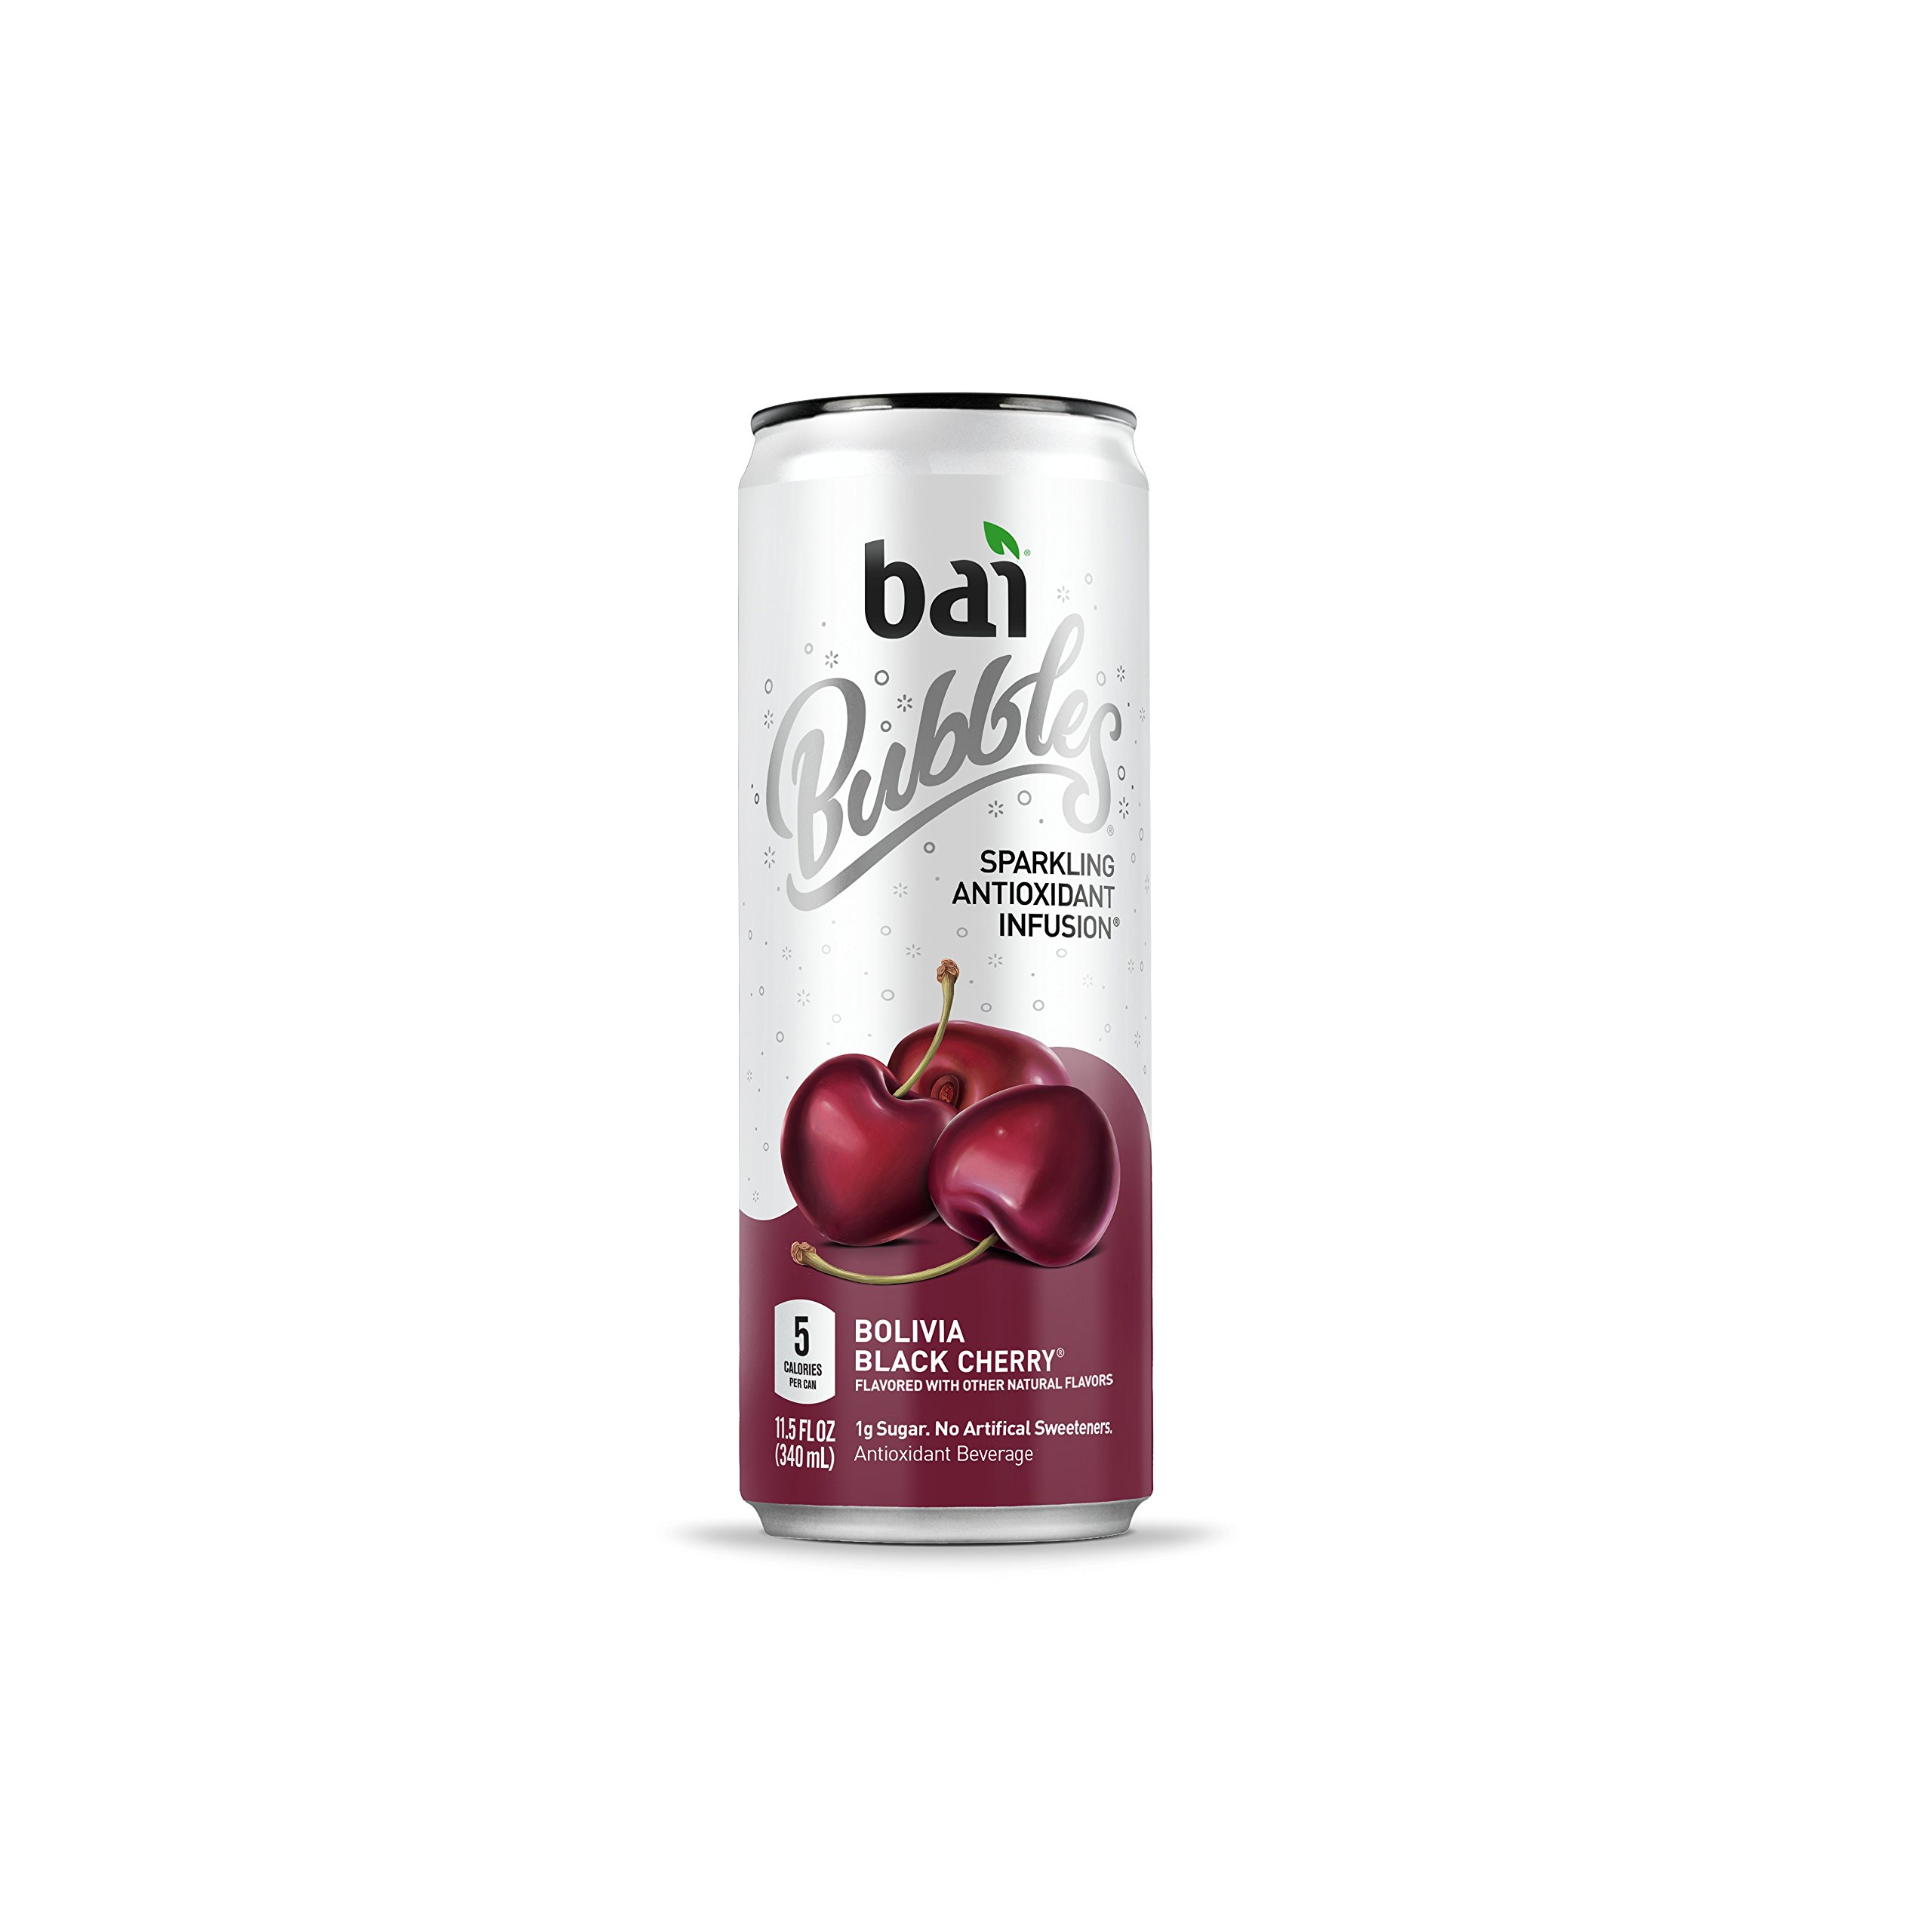 Bai Bubbles Bolivia Black Cherry, Antioxidant Infused, Sparkling Water Drinks, 11.5 Fluid Ounce Cans, 12 count (Packaging May Vary)